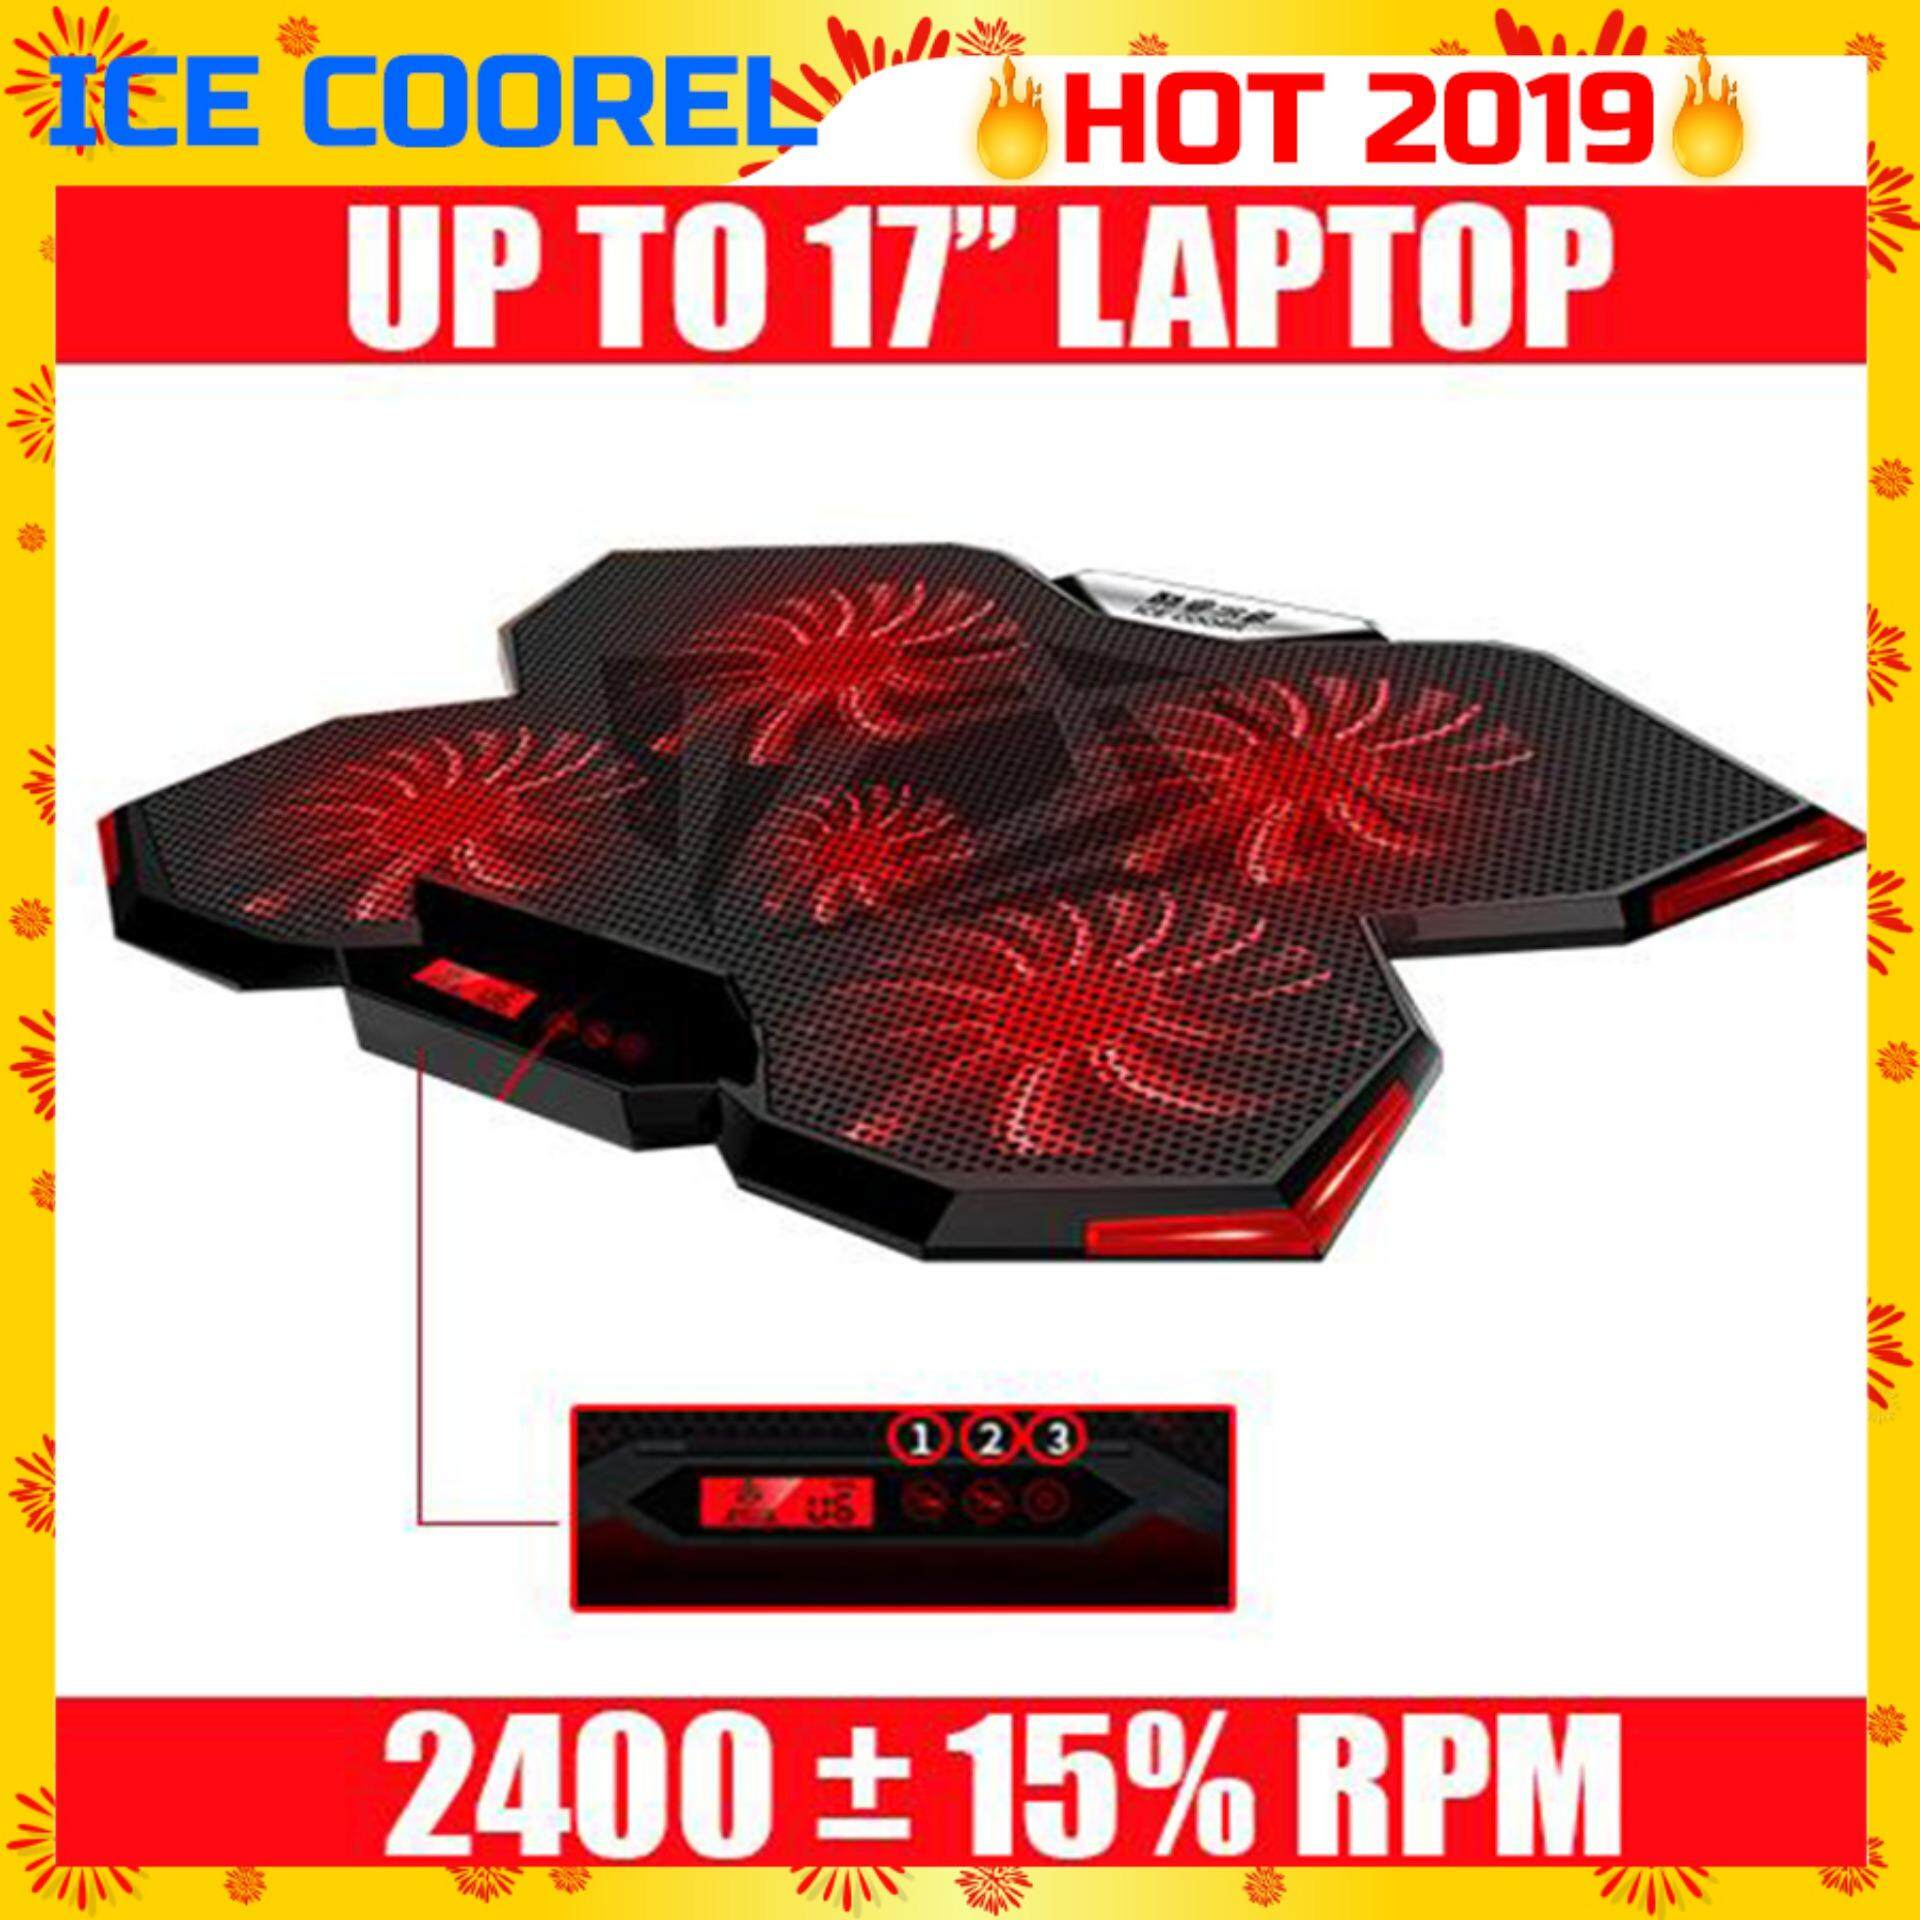 ICE COOREL K3 [NP66] Ice Cooling Laptop Cooler Pads Super Mute 5 Fans/3 Mode/6 Speed Control With Built-in LCD Display and Rack Stand for Laptop/Notebook-(Limited Red Light) Malaysia